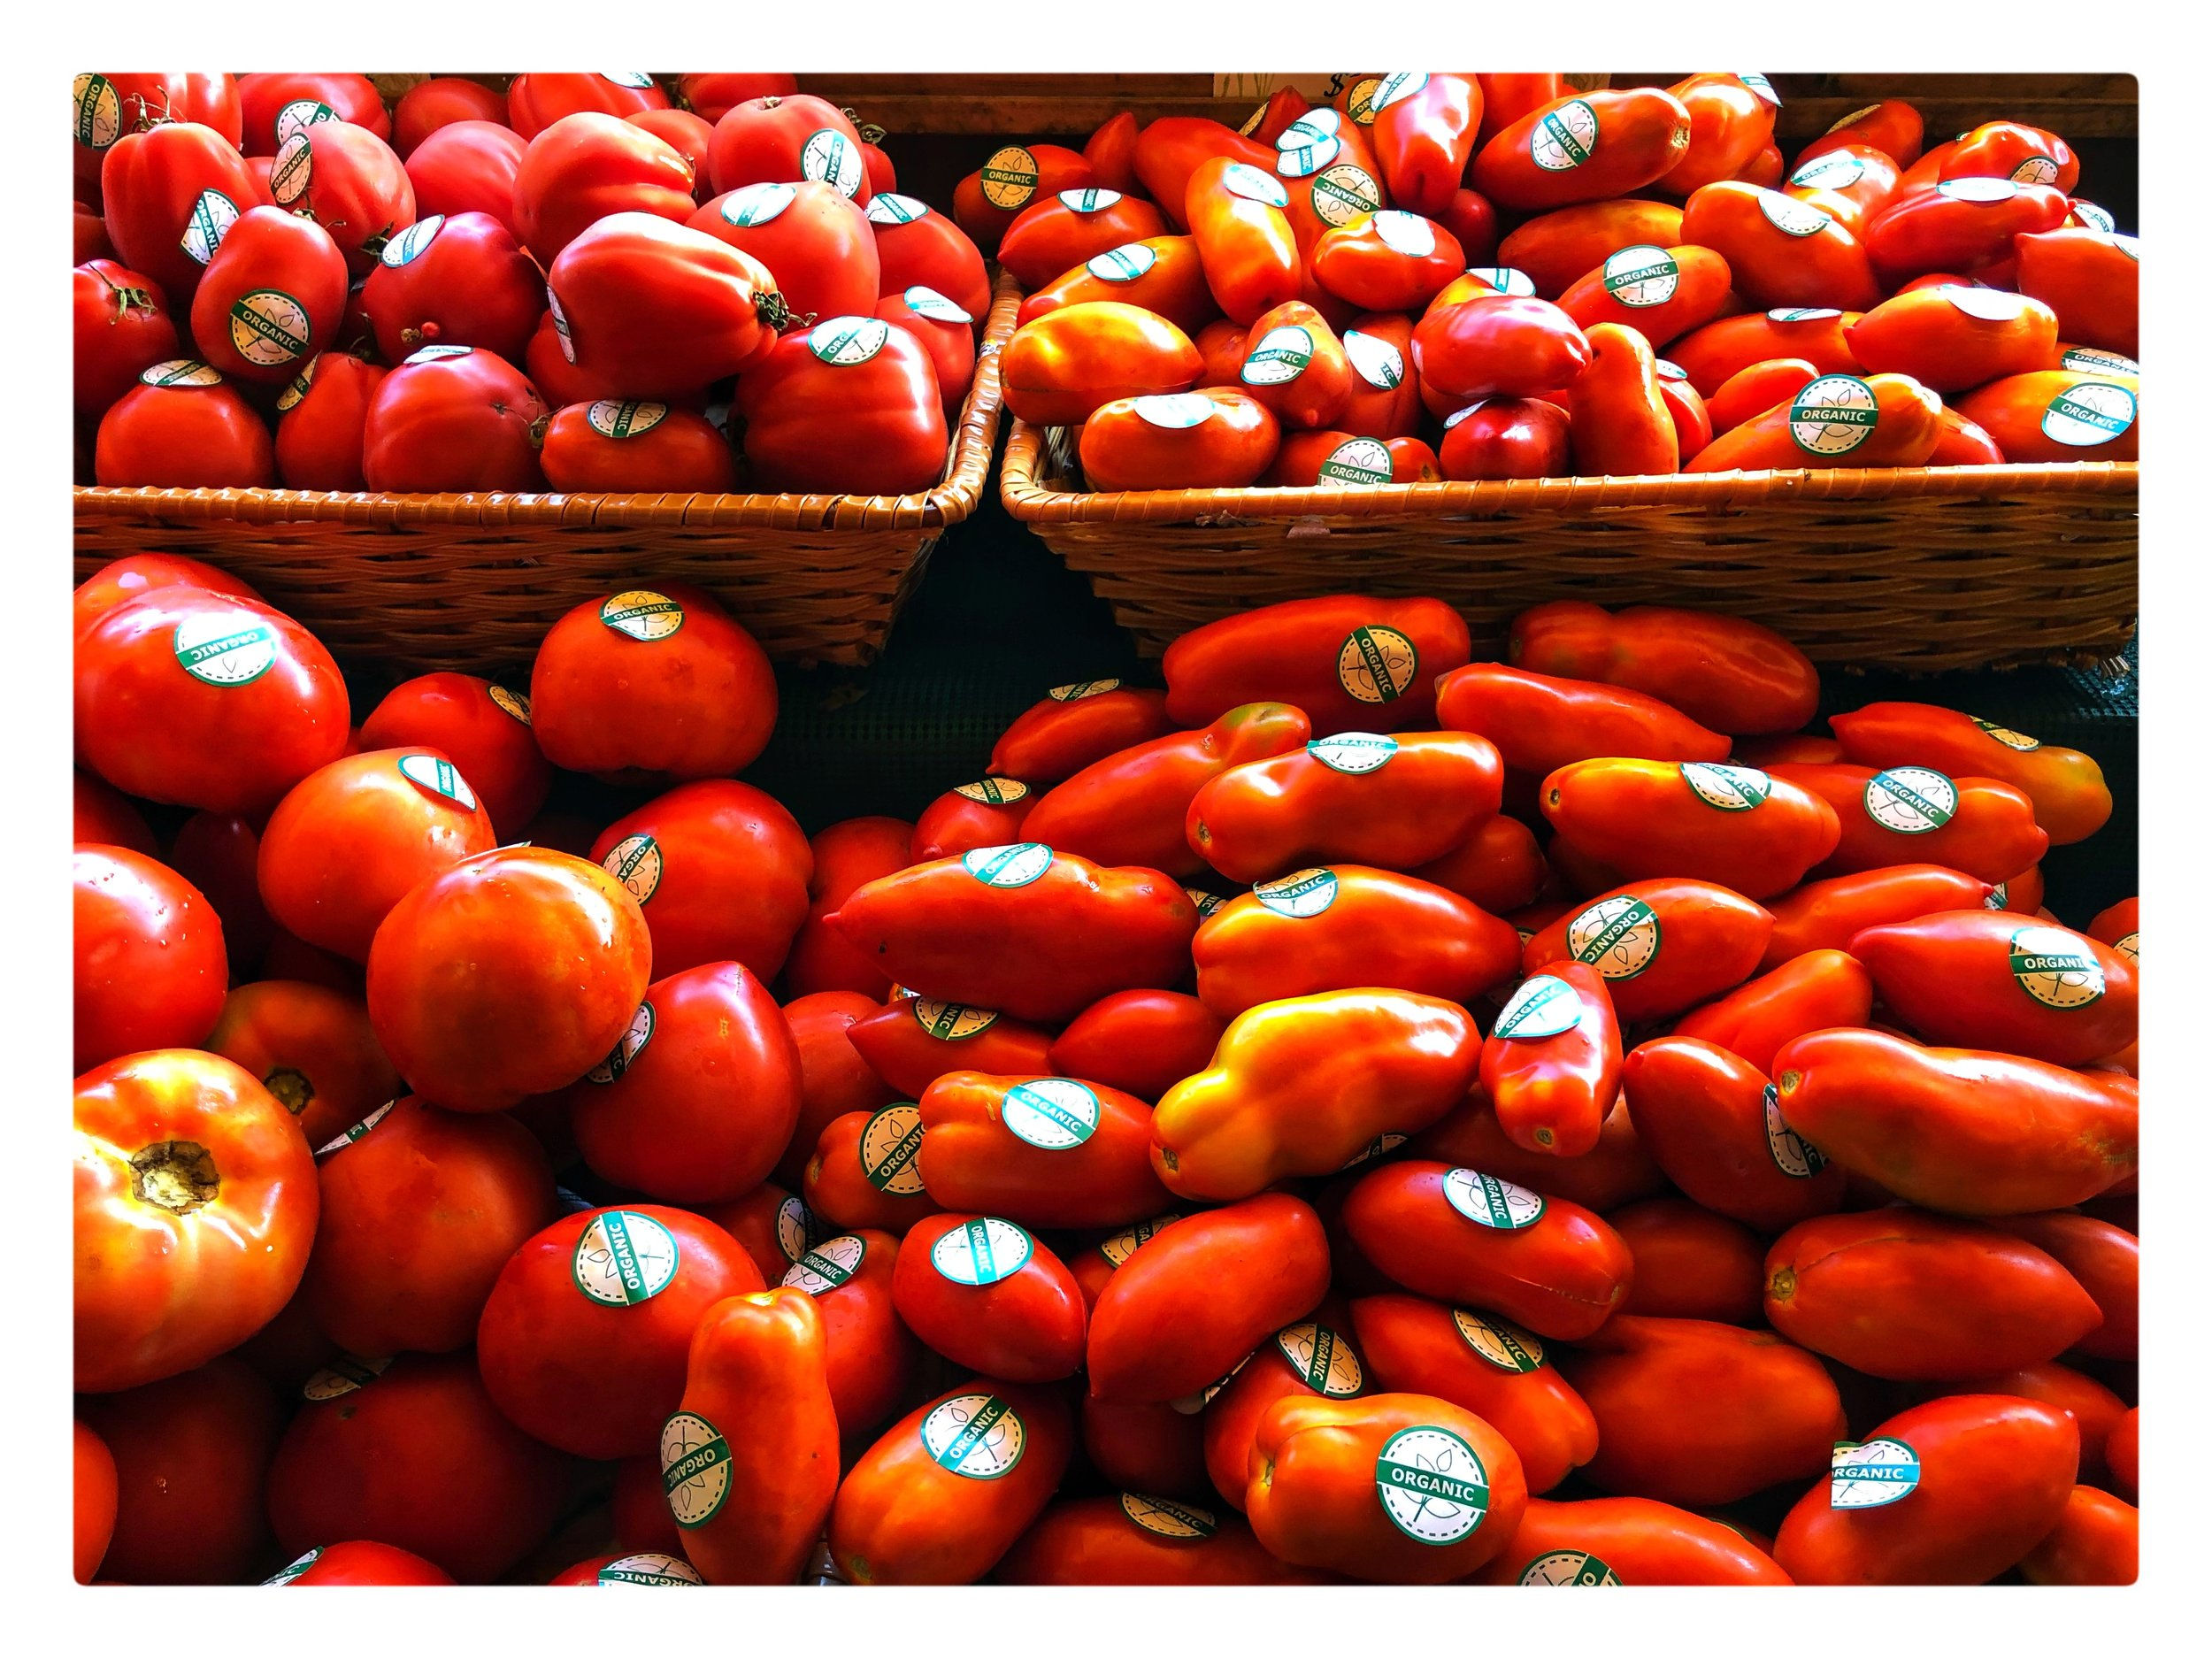 Organic locally grown tomatoes on Special this week! They are delicious!!!